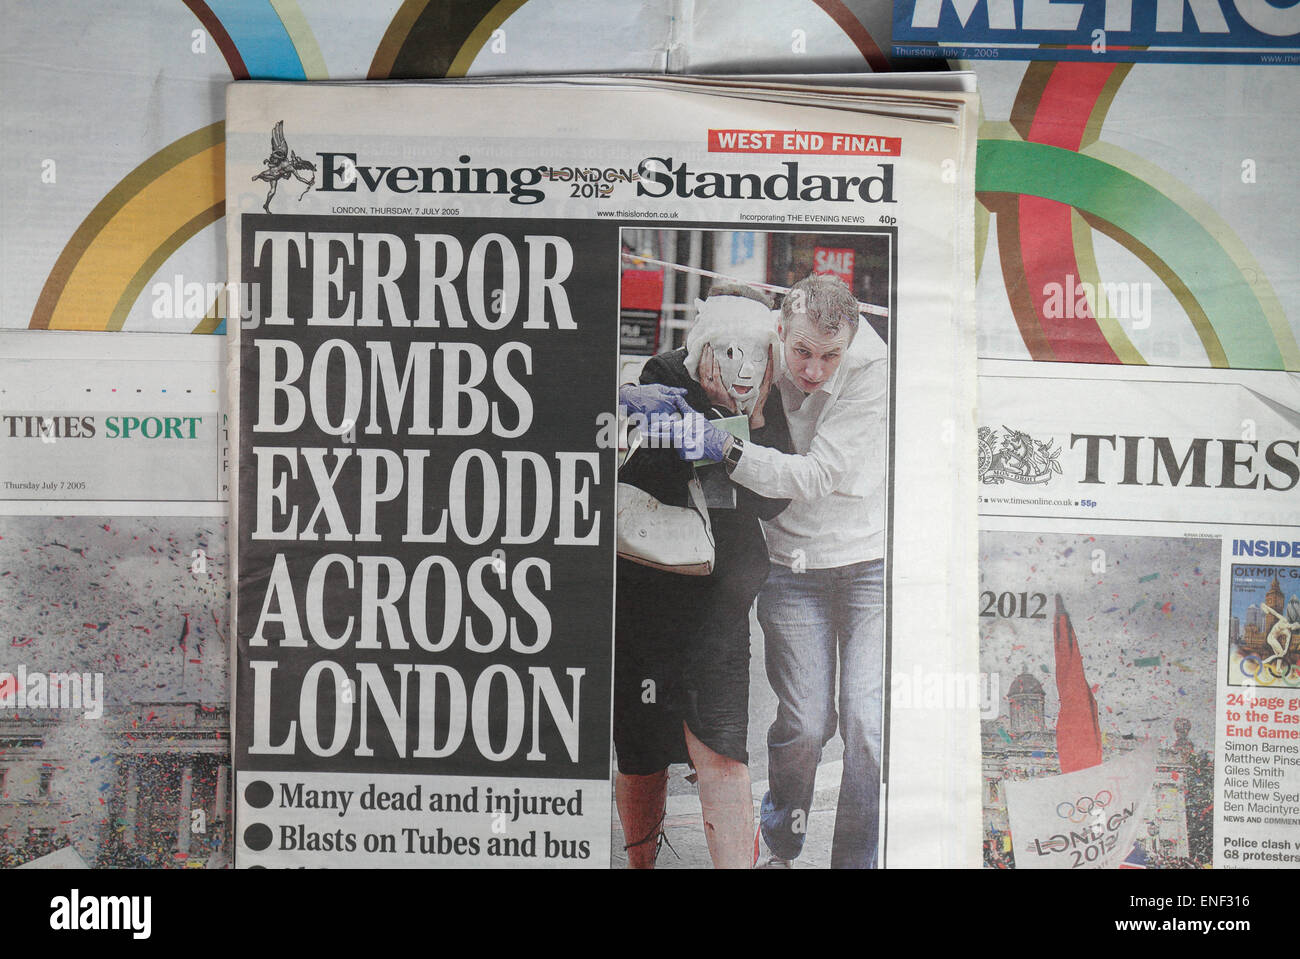 Newspapers published on 7th July 2005 before and after the terrorists attacks. (SEE NOTES) - Stock Image